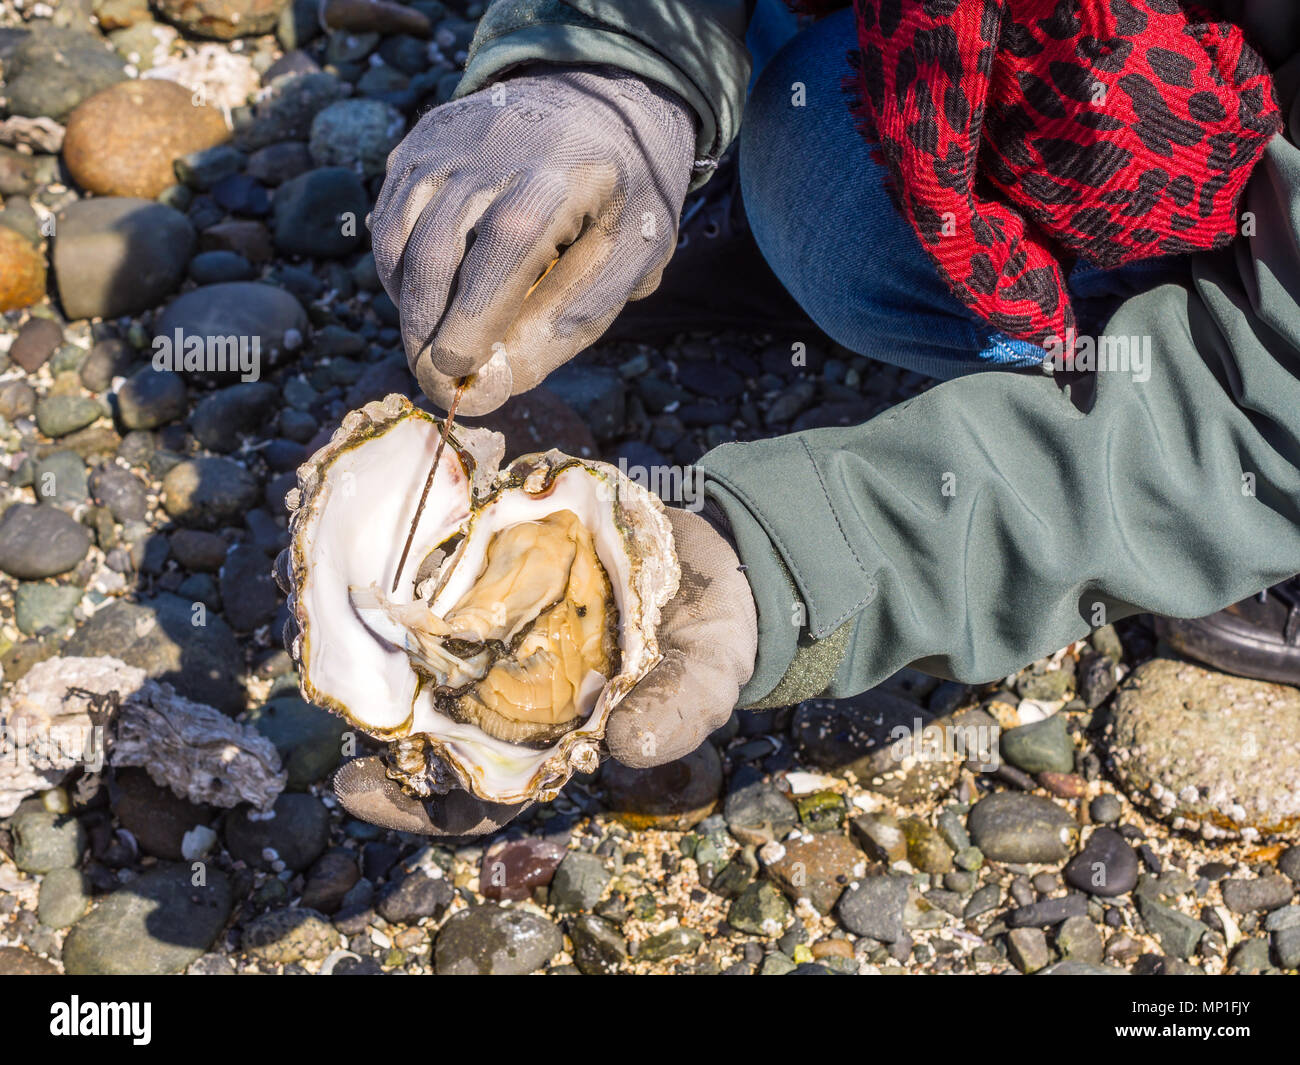 Opening Pacific Oyster found on beach, Helliwell Provincial Park, Hornby Island, BC, Canada. - Stock Image